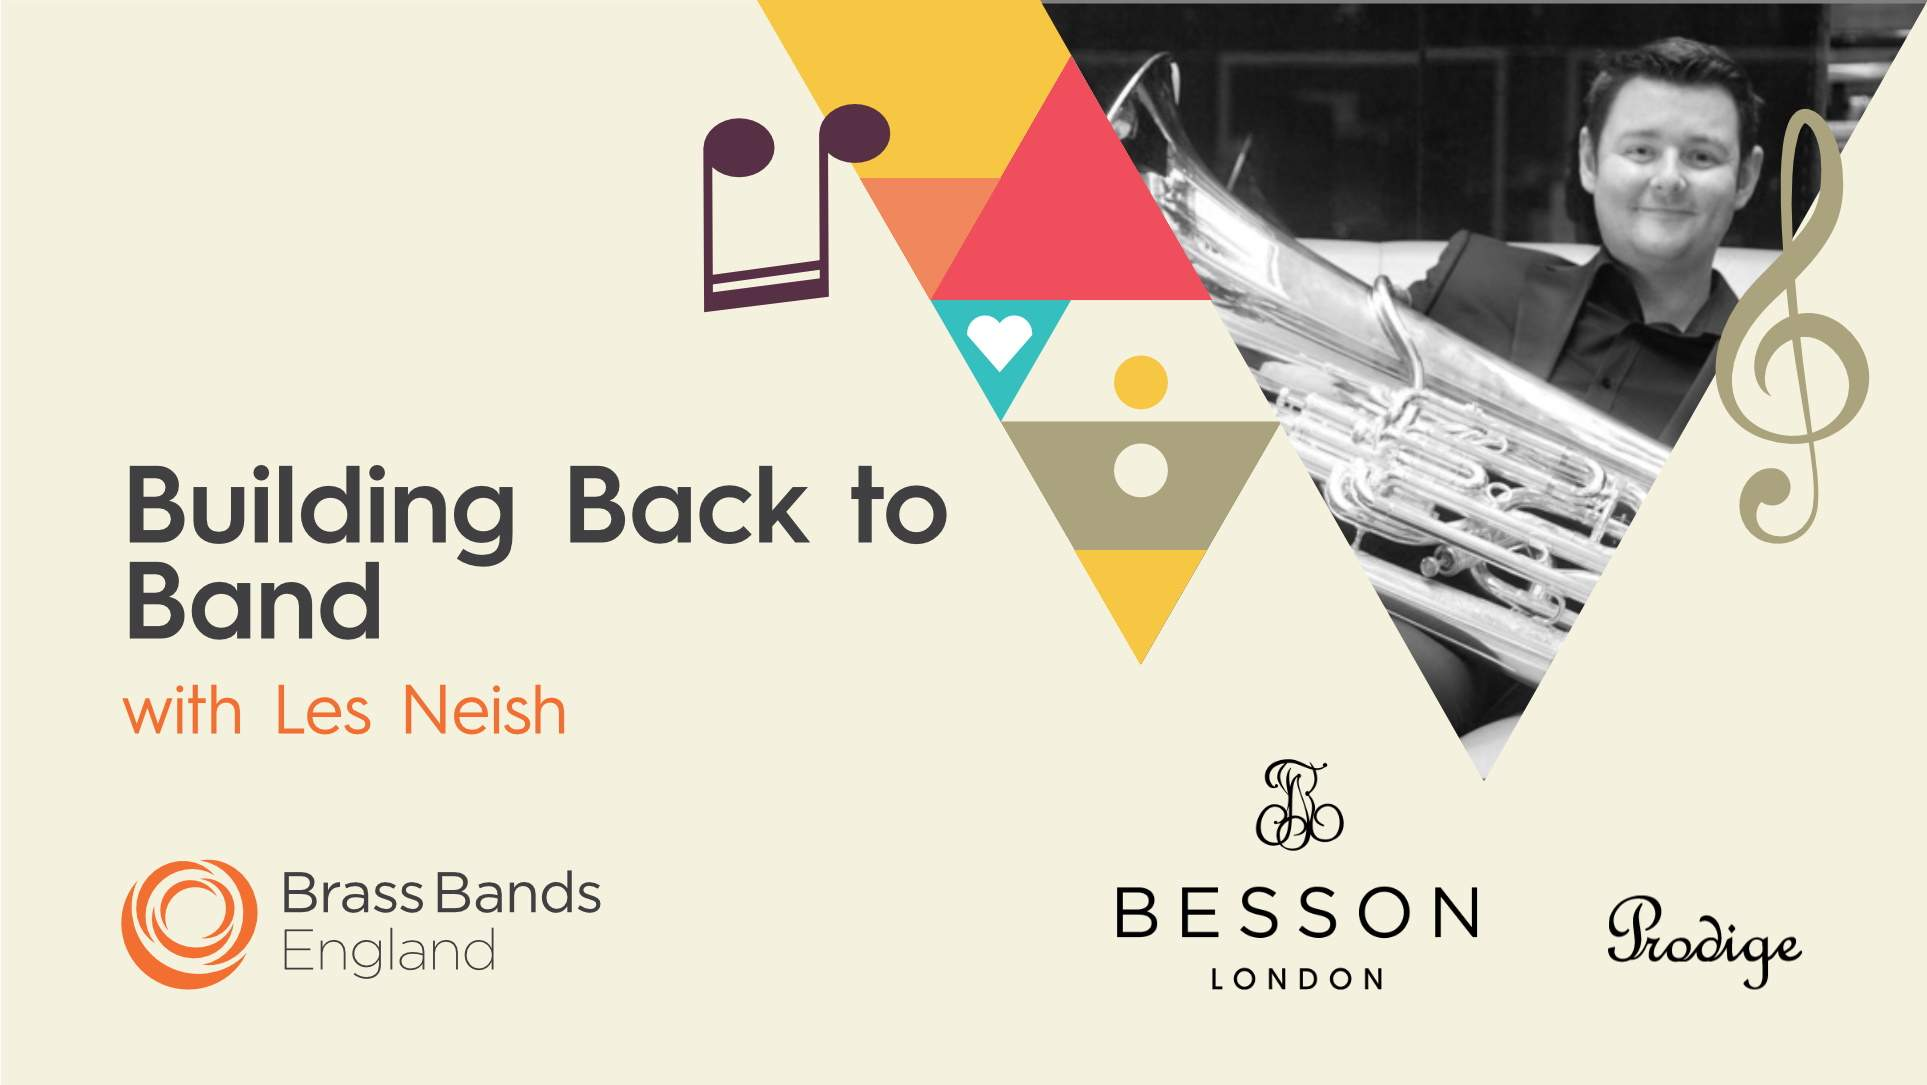 Building Back to Band with Les Neish supported by Besson